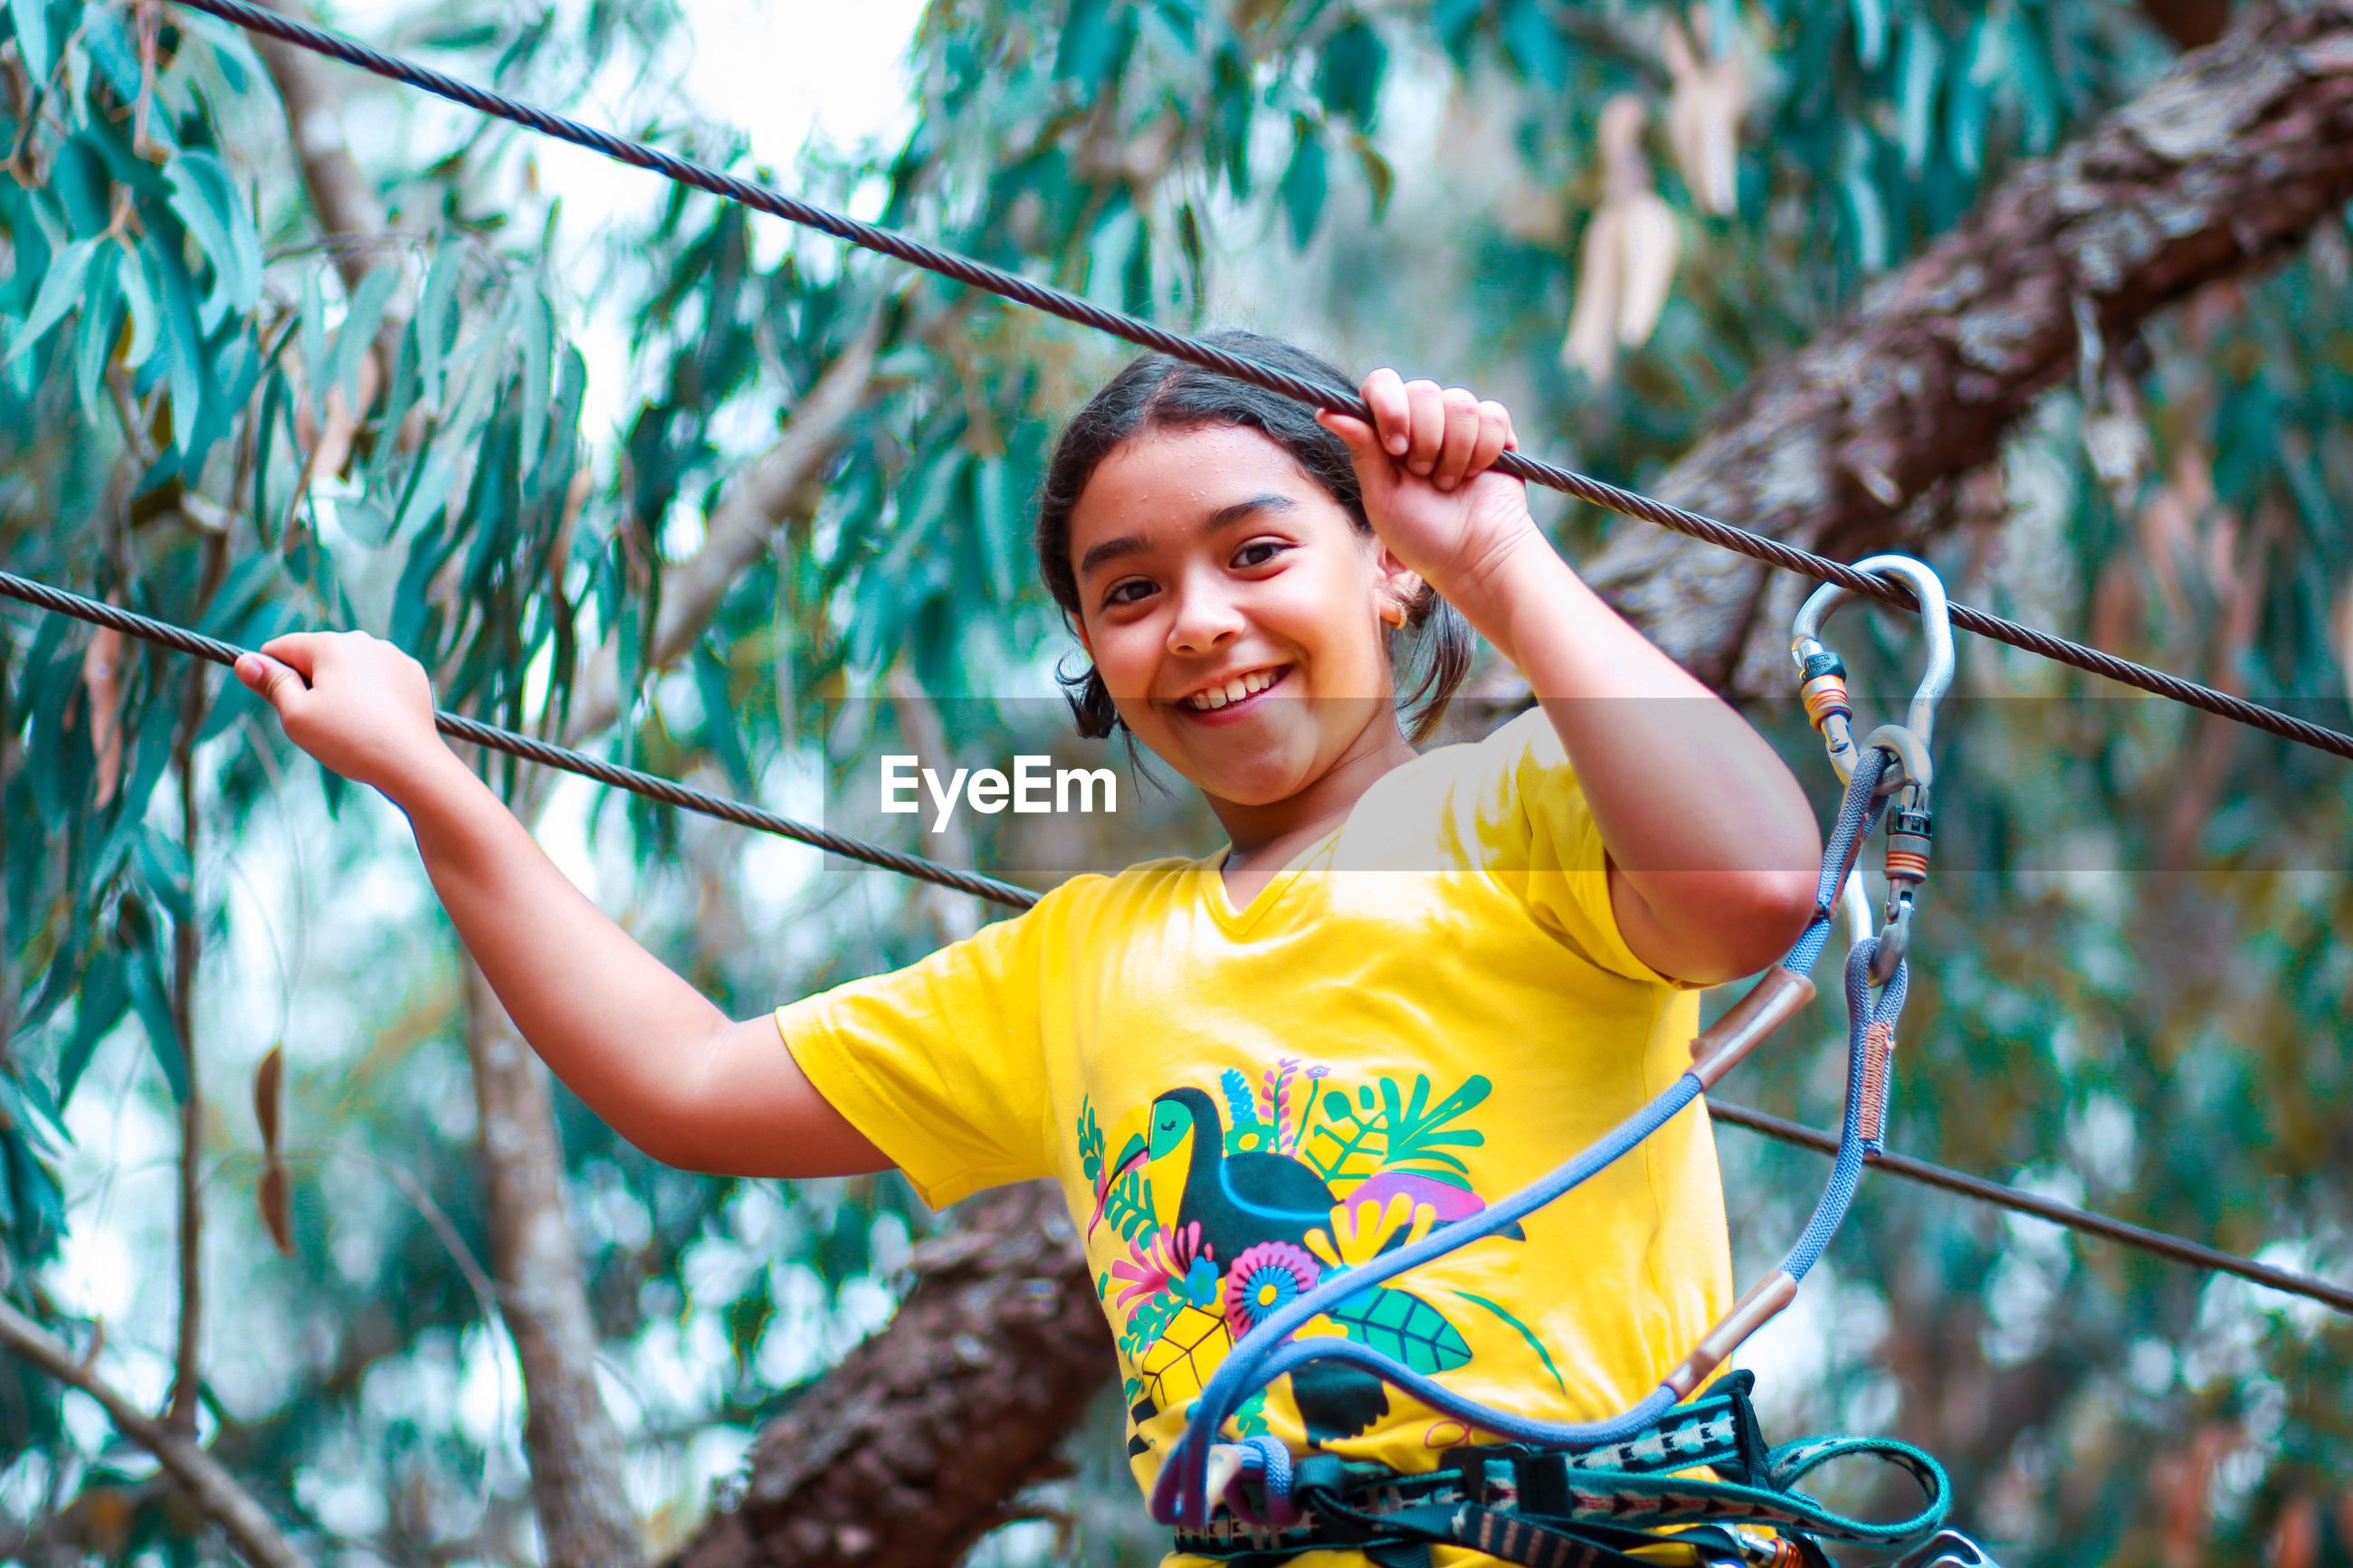 Portrait of smiling girl holding rope against trees